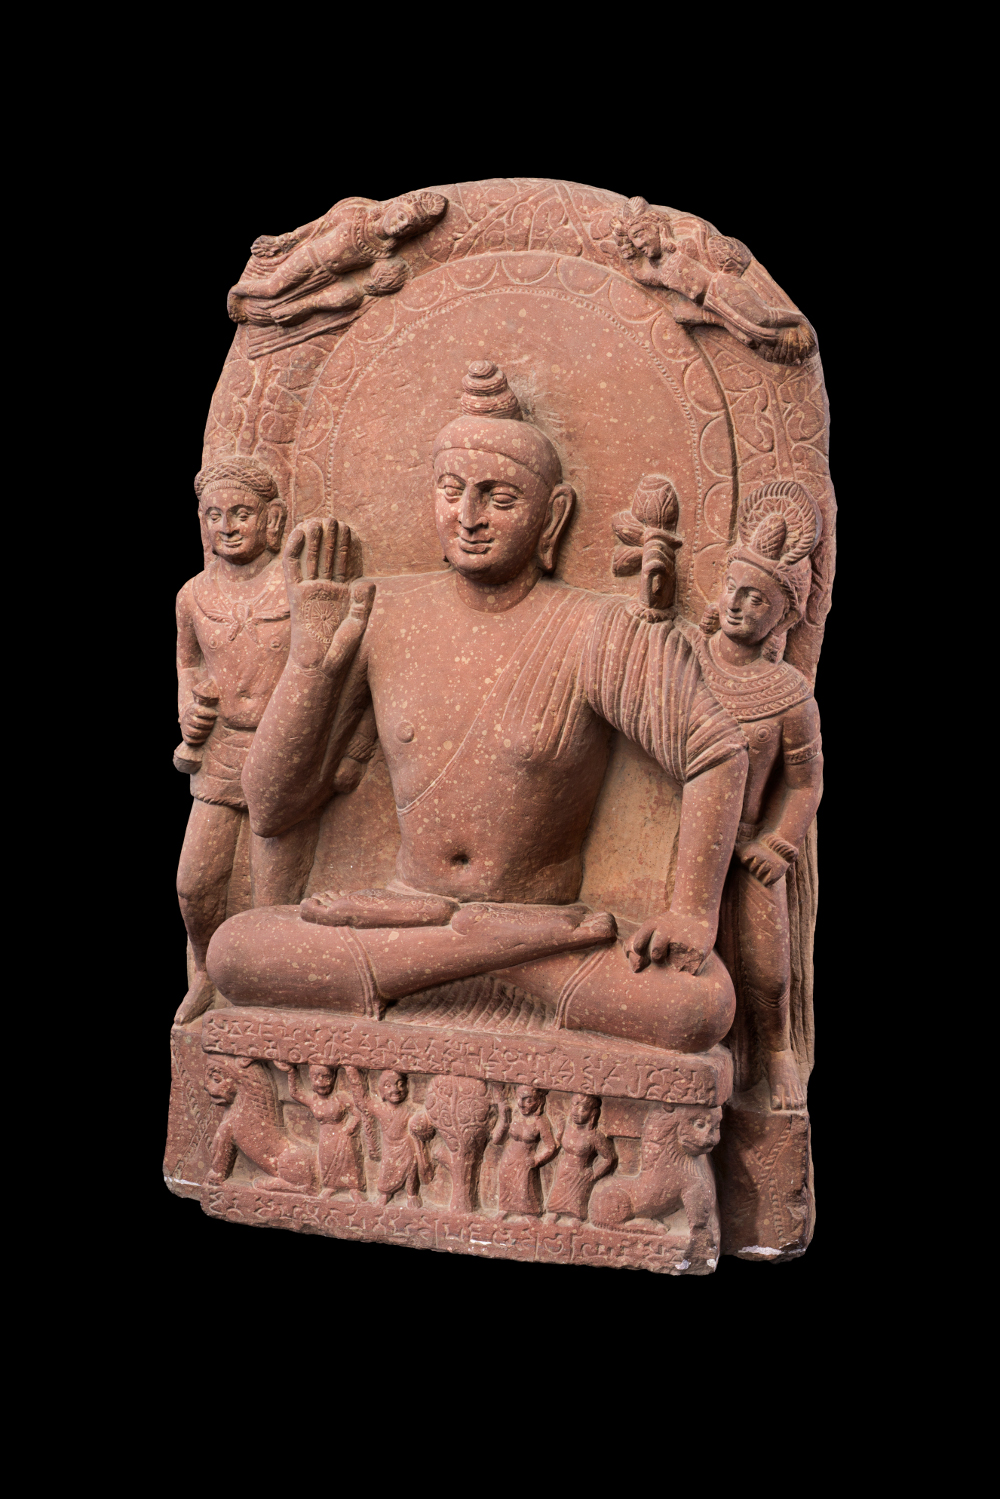 Buddhist triad from Mathura - Red sandstoneProbably AD 159–160Ahichhatra, Uttar Pradesh, IndiaNational Museum, New Delhi